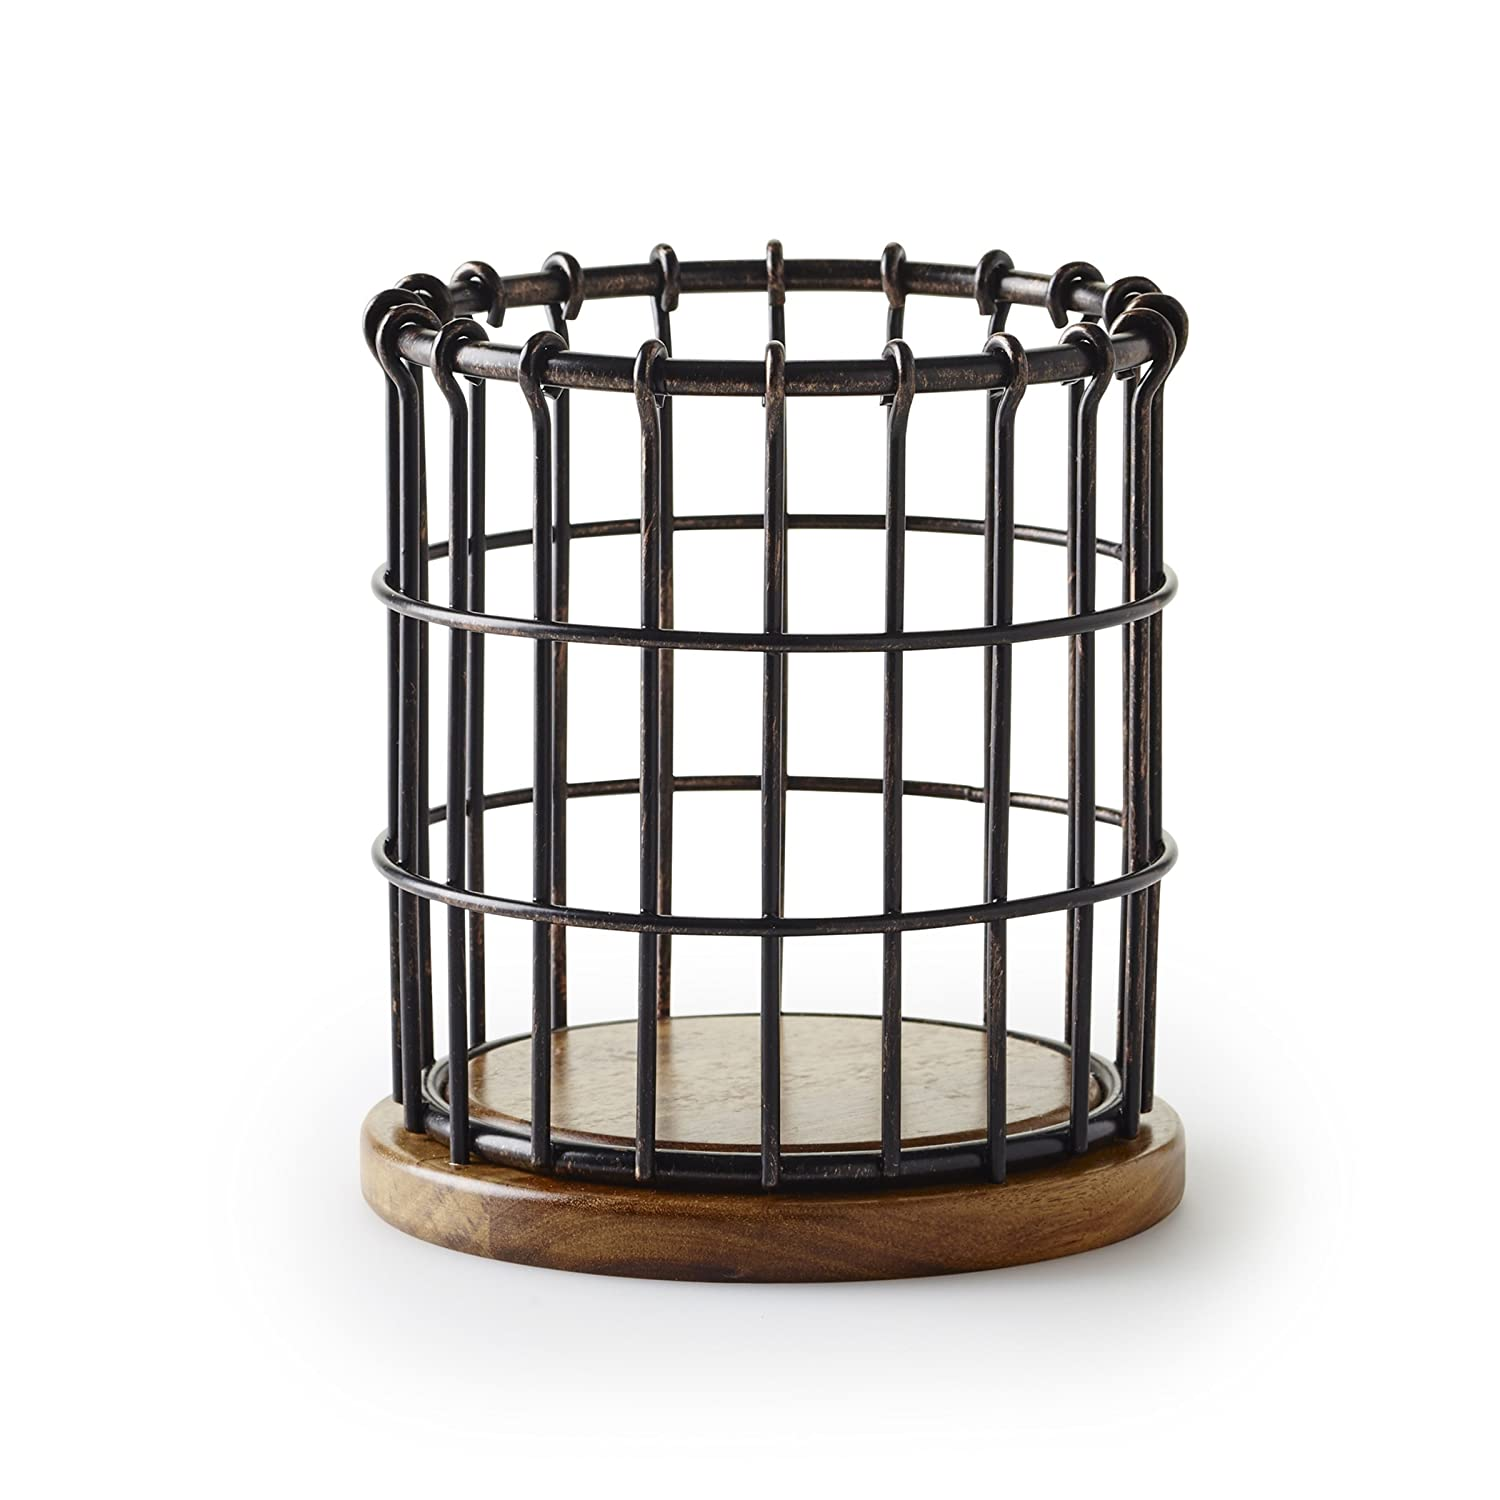 Pfaltzgraff Anvil Cage Wire And Acacia Wood Utensil Holder, Black 5172949